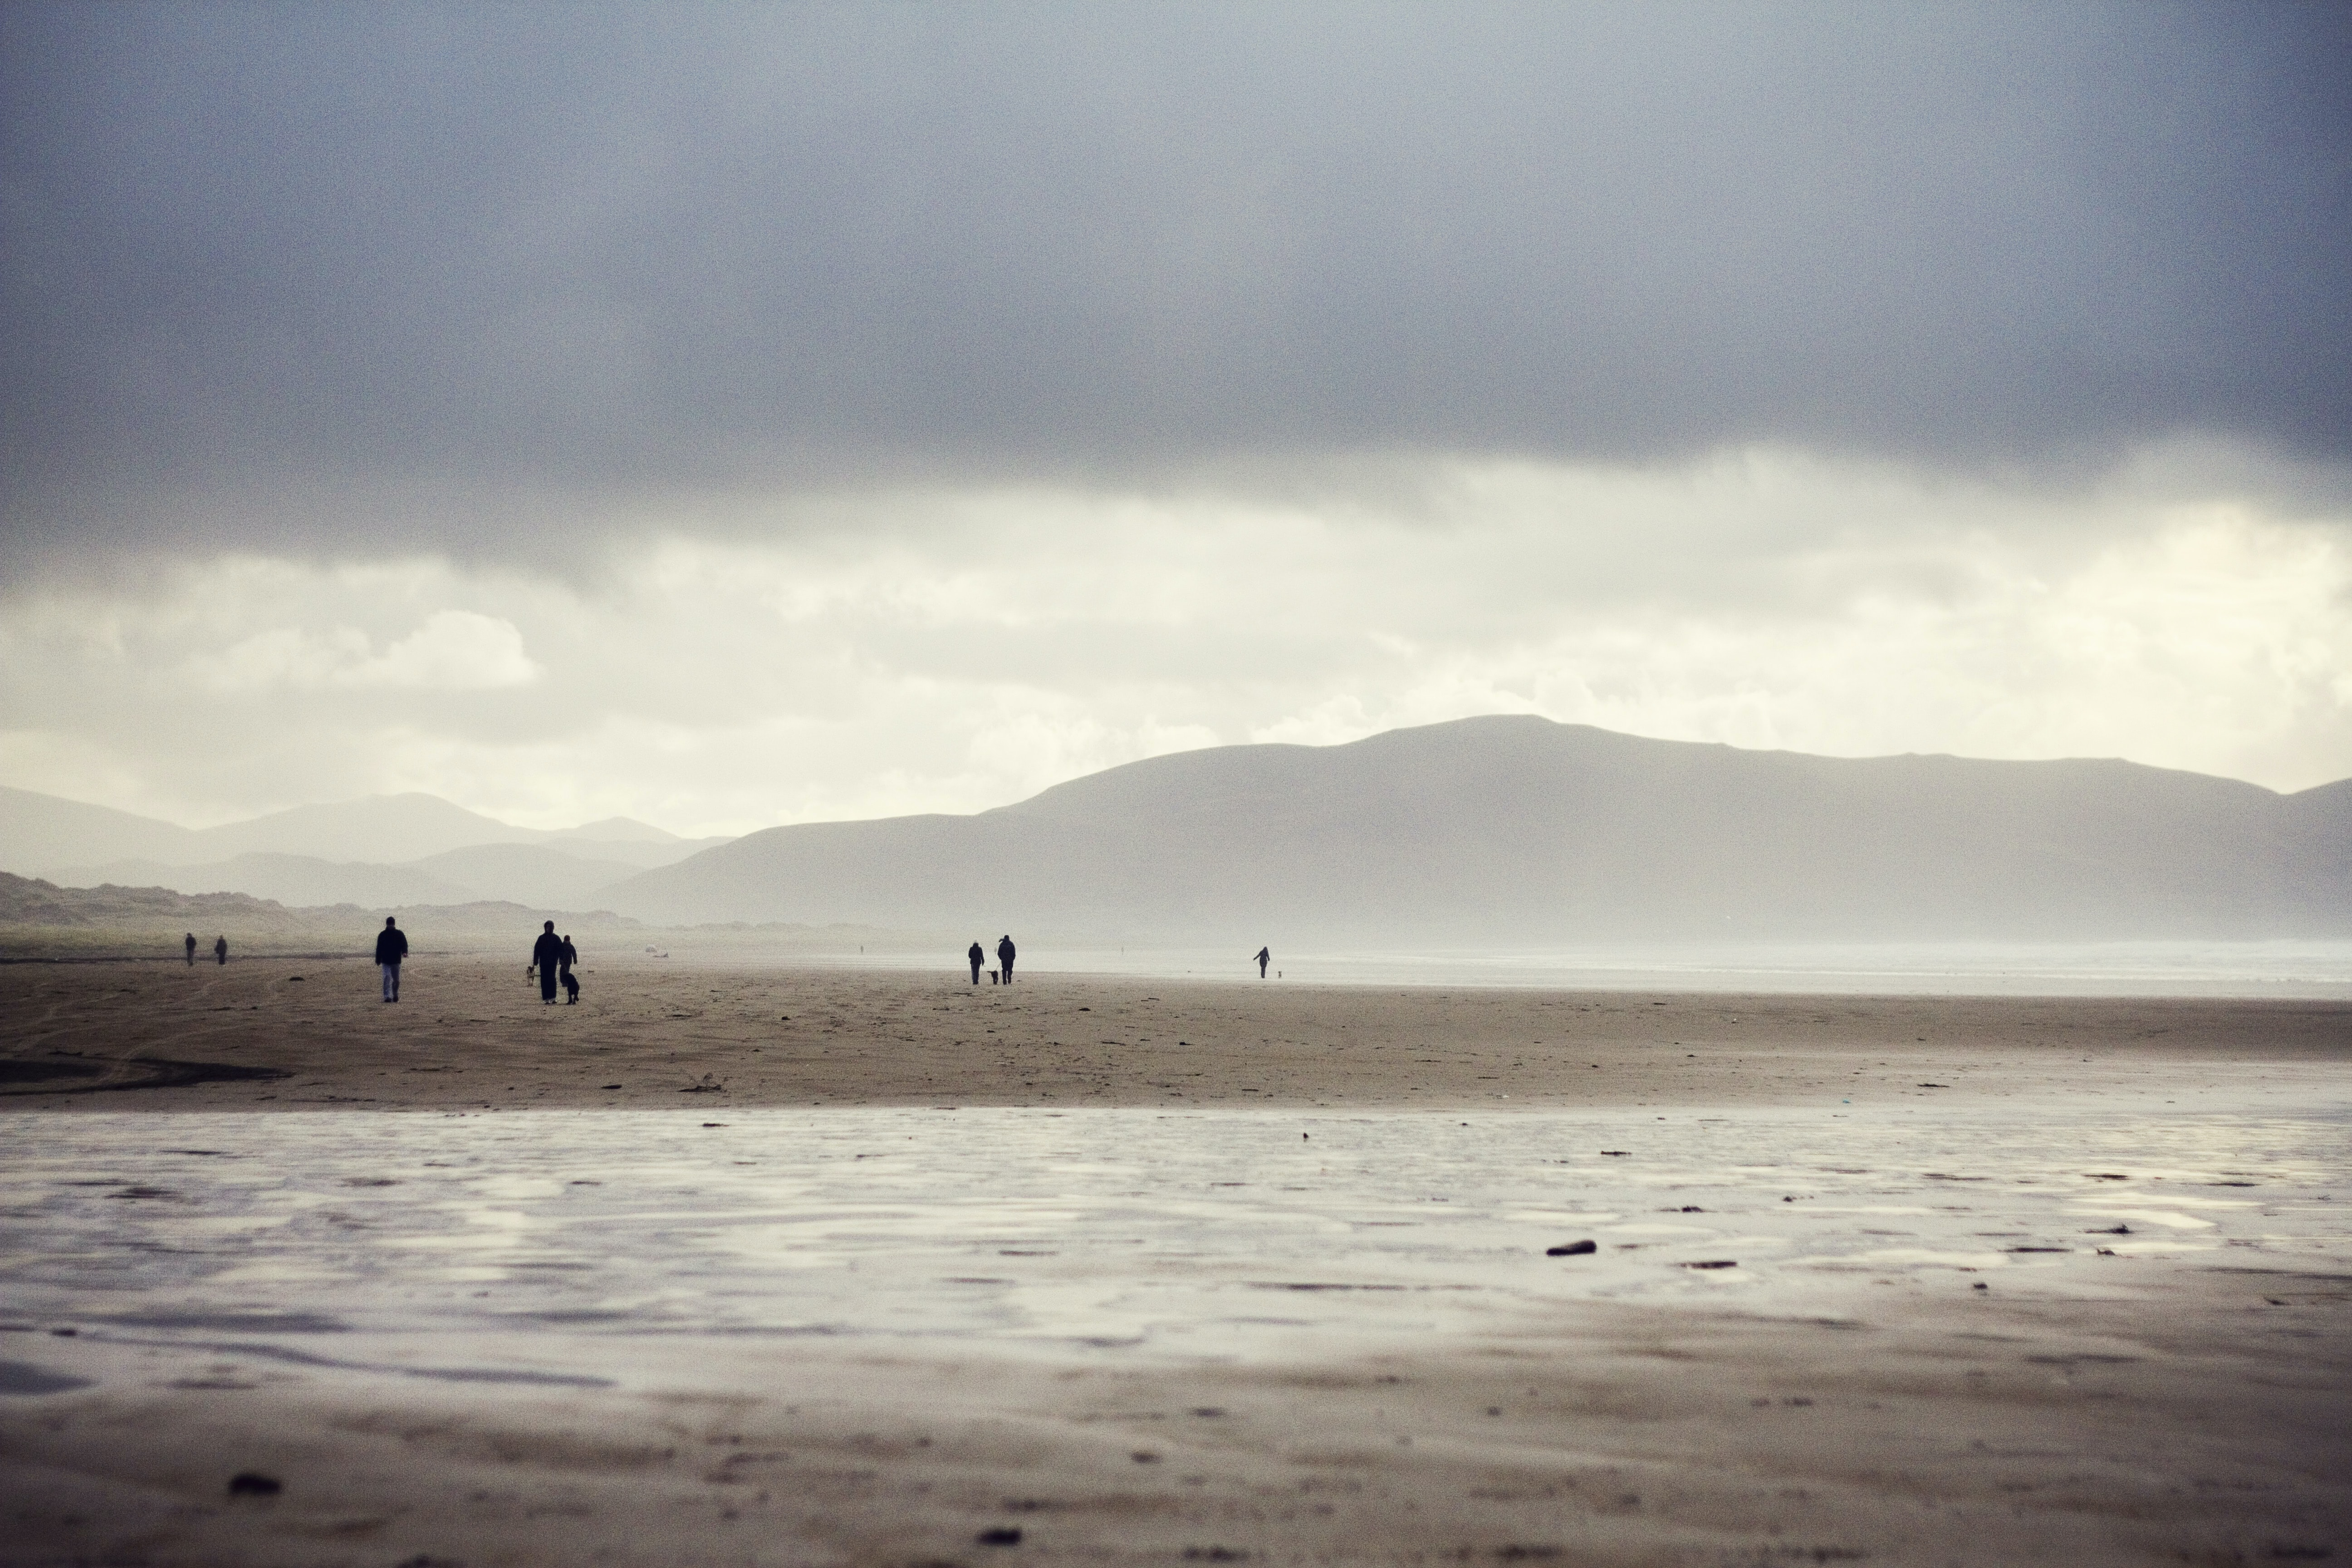 People walking on the sand along a high tide shore in a cloudy day.